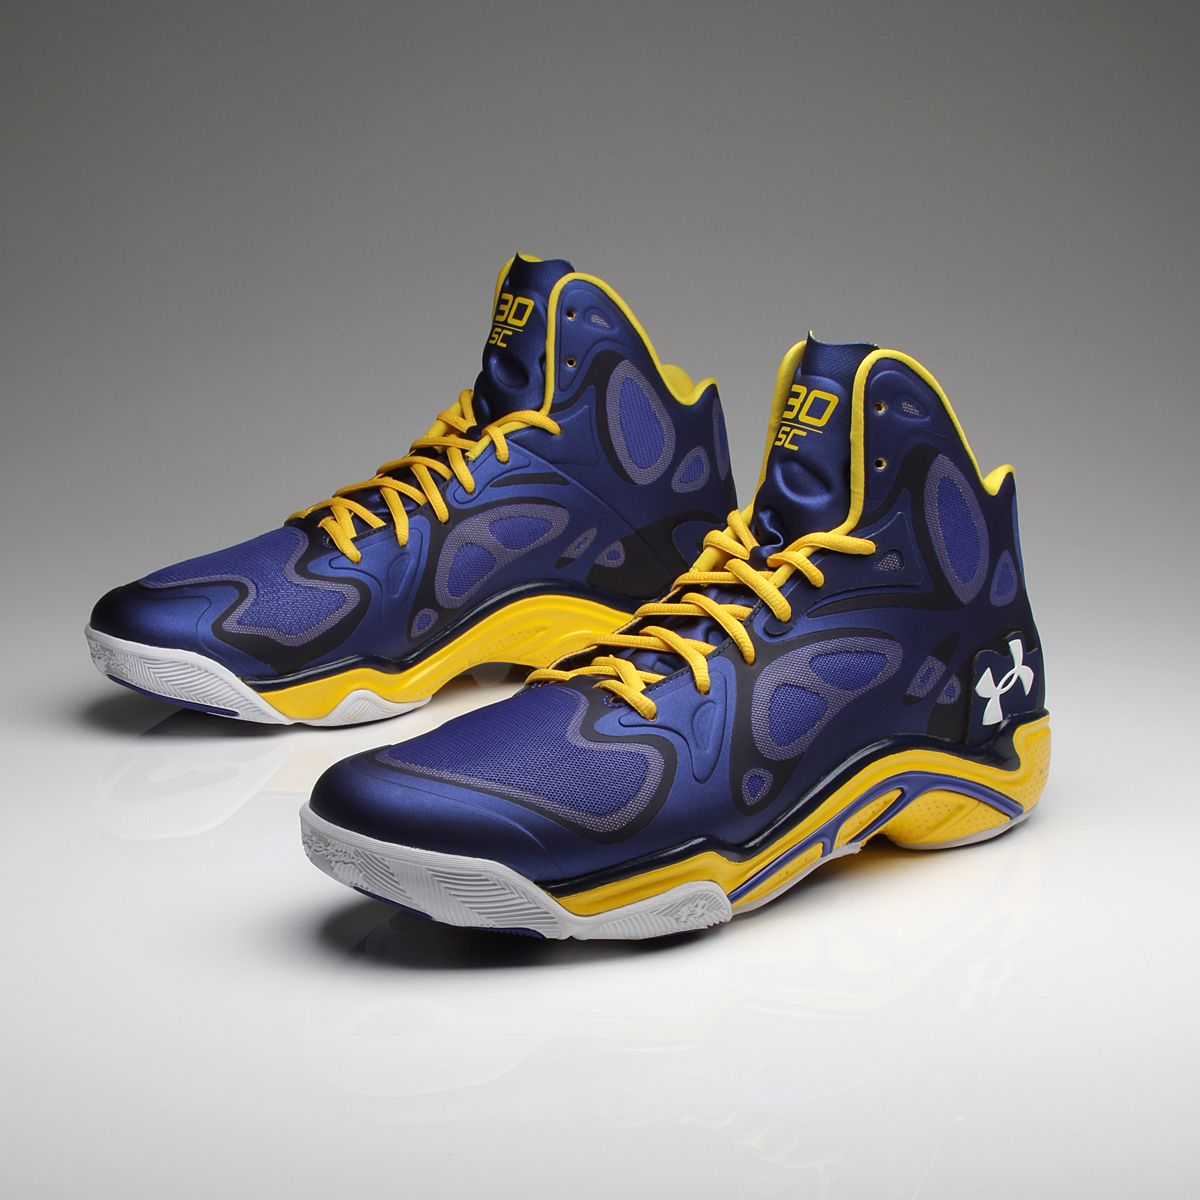 stephen curry shoes sale foamposite retail price